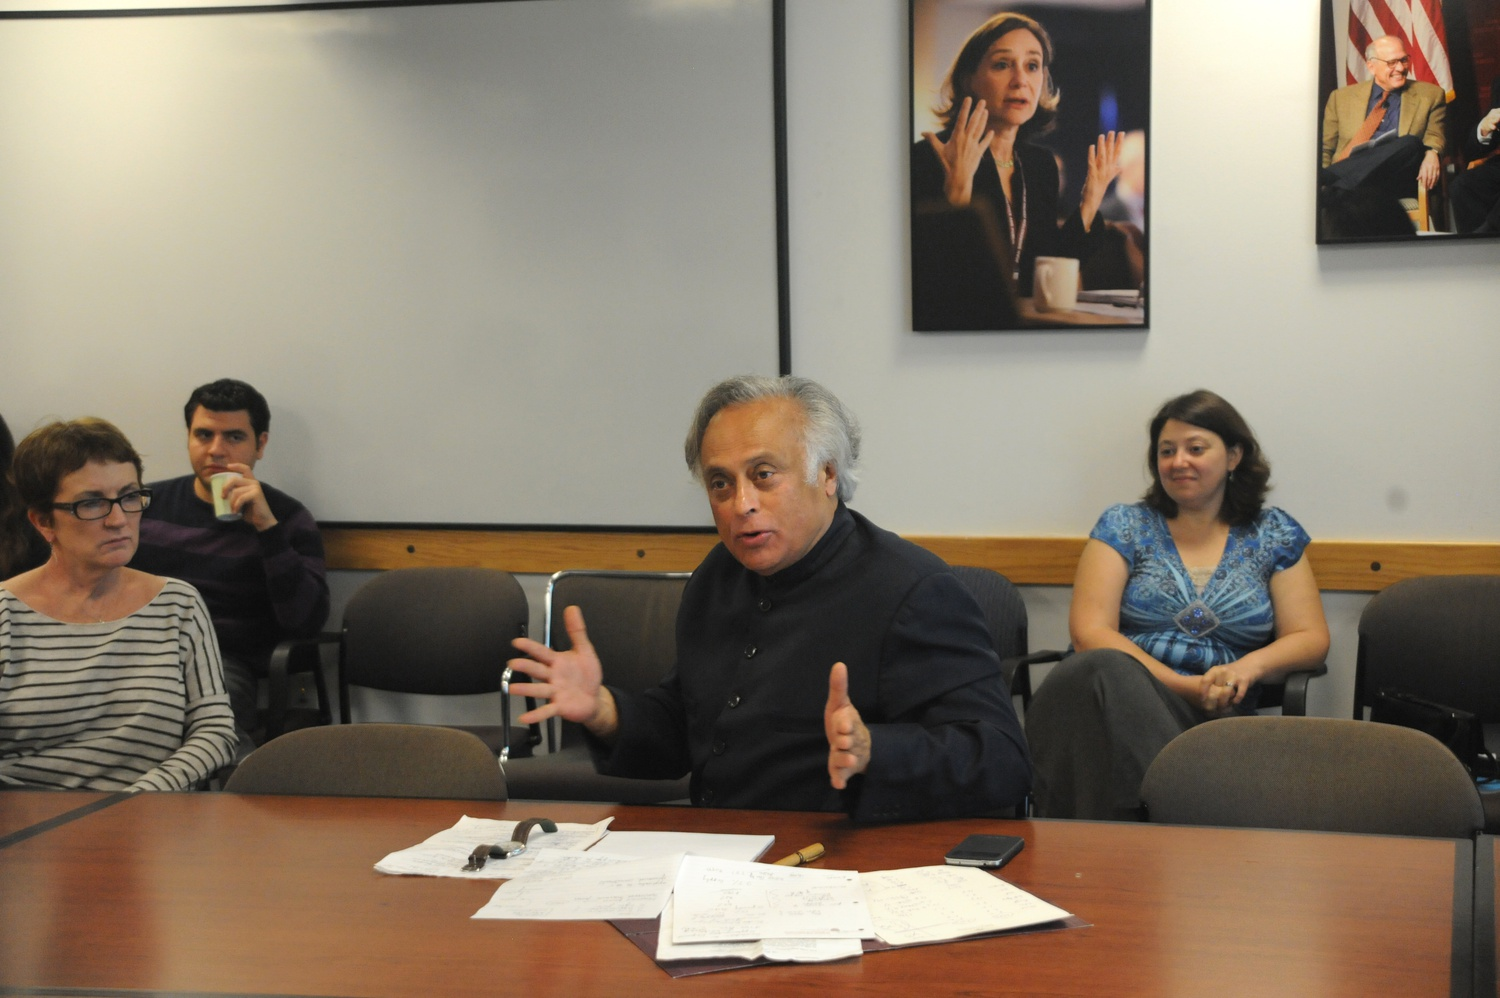 Indian Minister Jairam Ramesh speaks in the Kalb Seminar Room at the Harvard Kennedy School of Government for the Nuclear Power and Climate Change in India seminar on Tuesday. This seminar was sponsored by the Project on Managing the Atom.